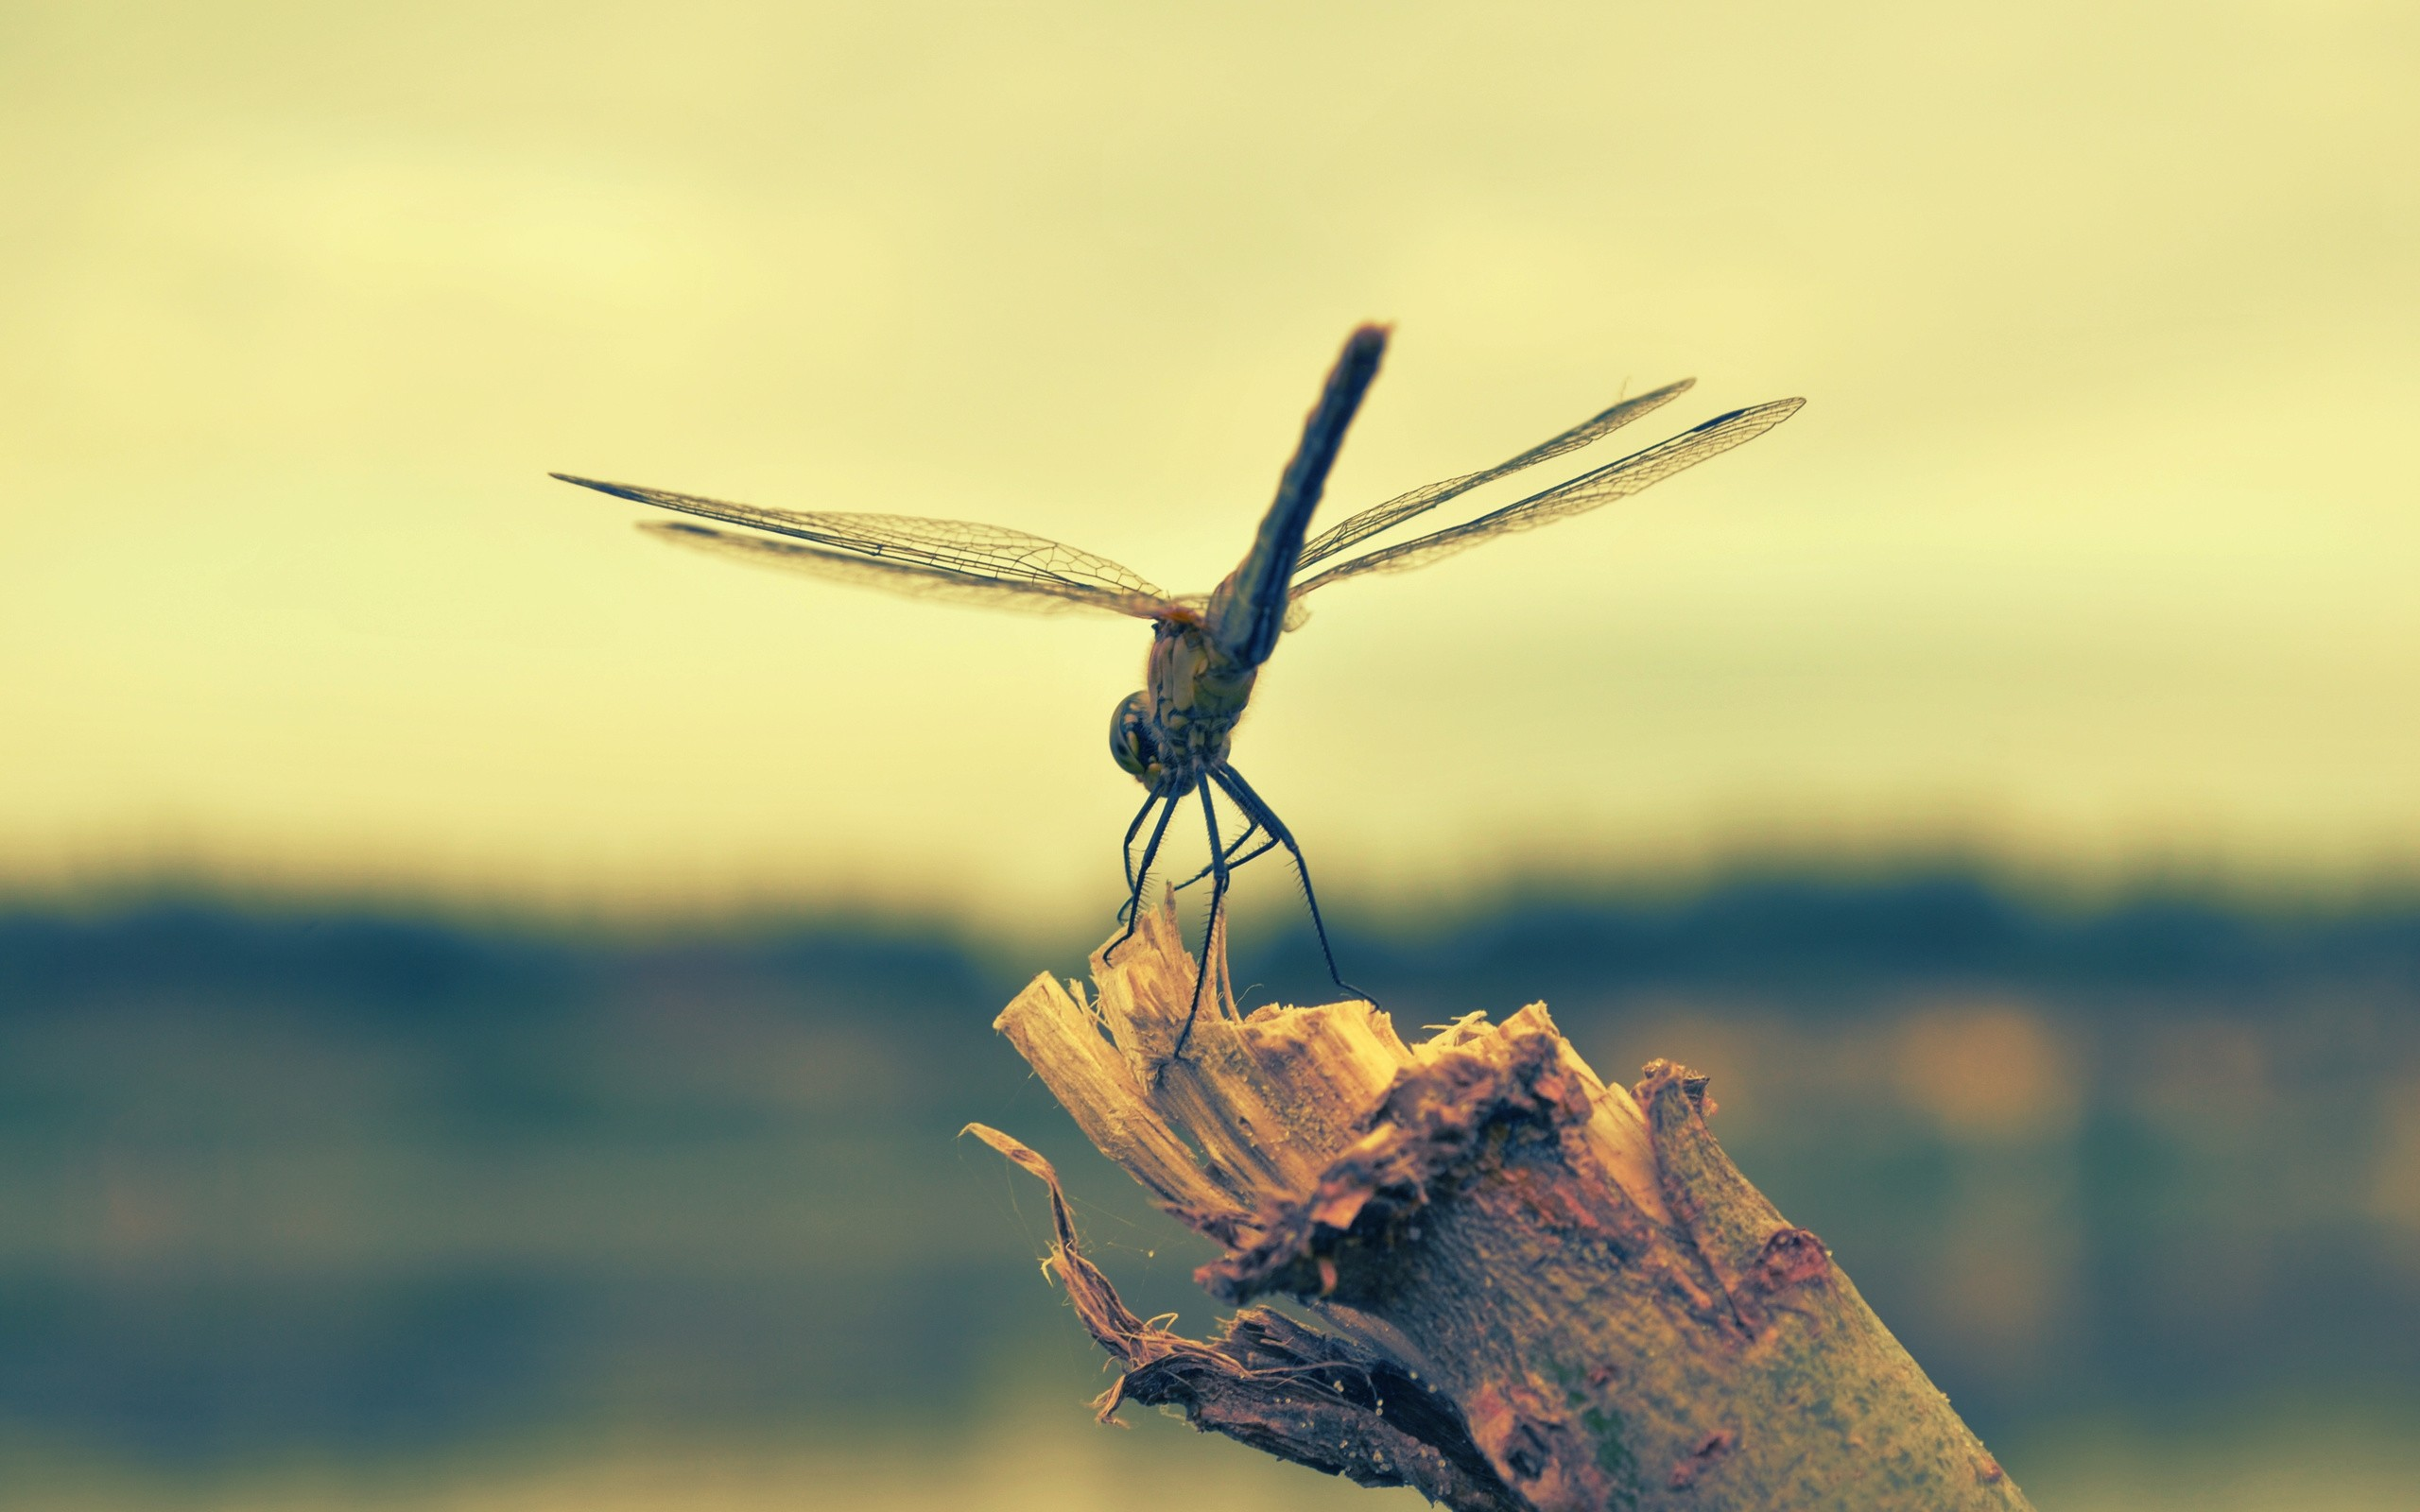 Res: 2560x1600, Dragonfly in Flight